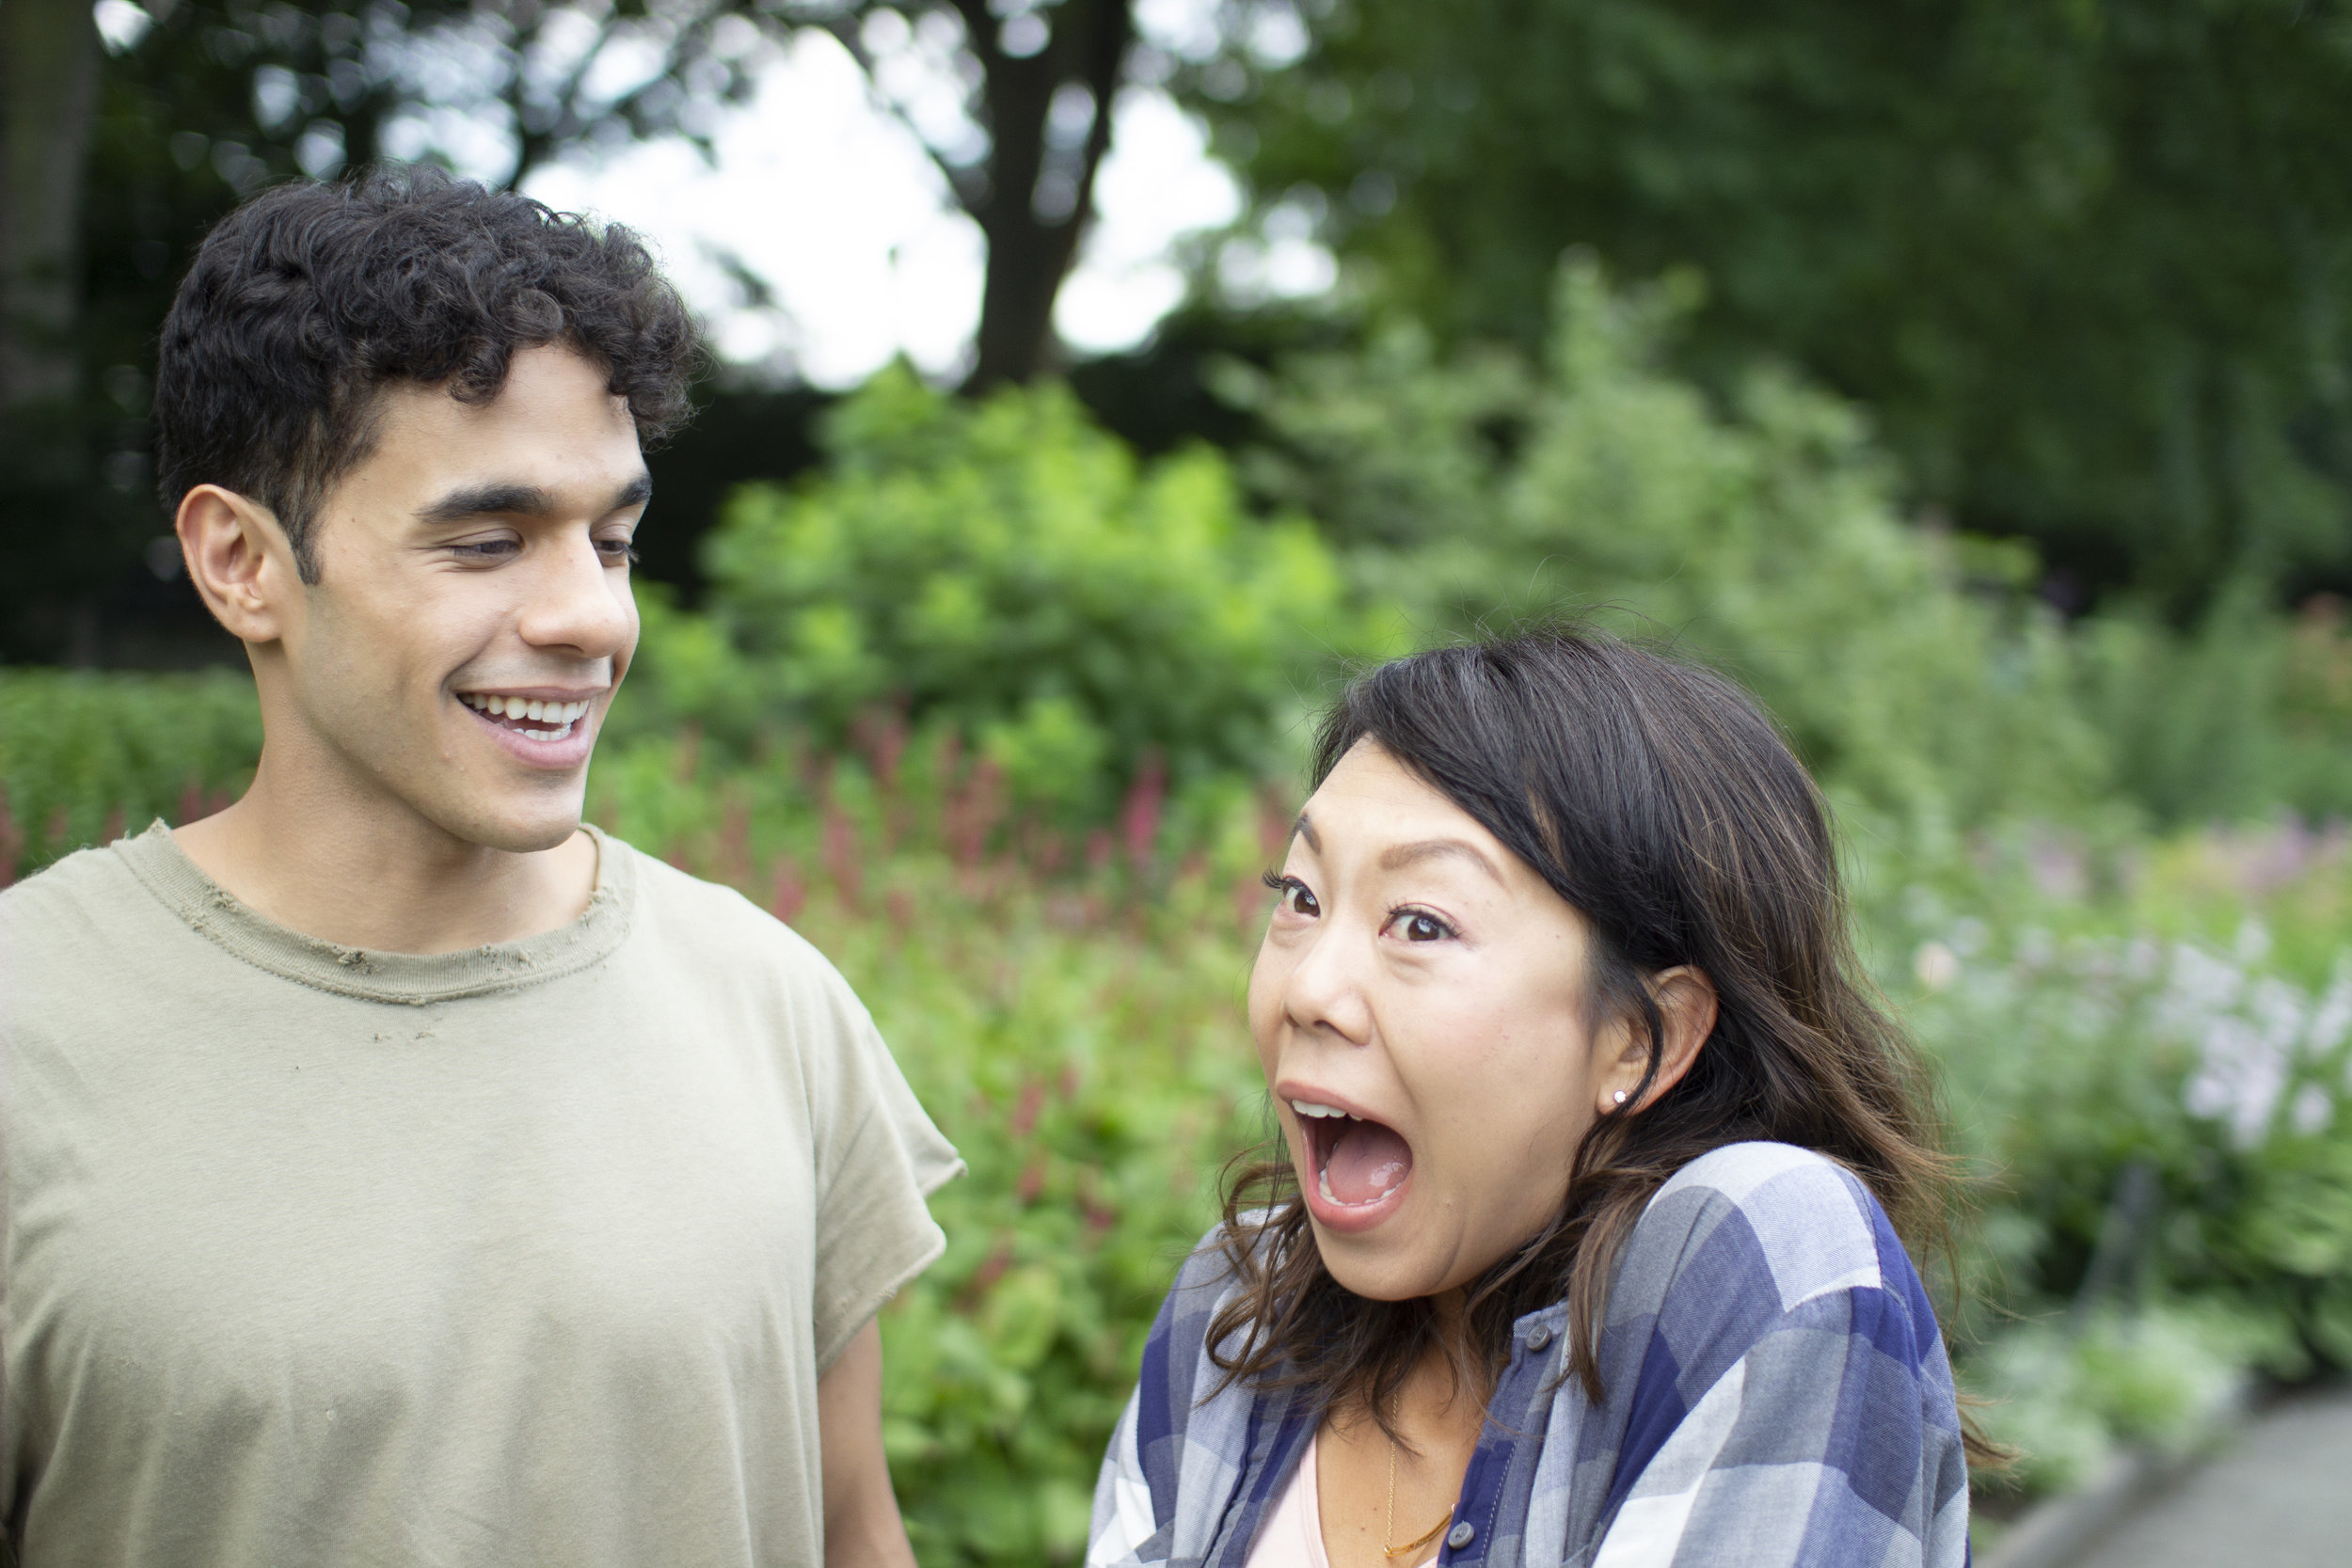 BTS of Gil Perez-Abraham (MARCO) and Ali Ahn (LIBBY). In Fort Tryon Park - Heather Gardens. Photo by Clark Burnett.